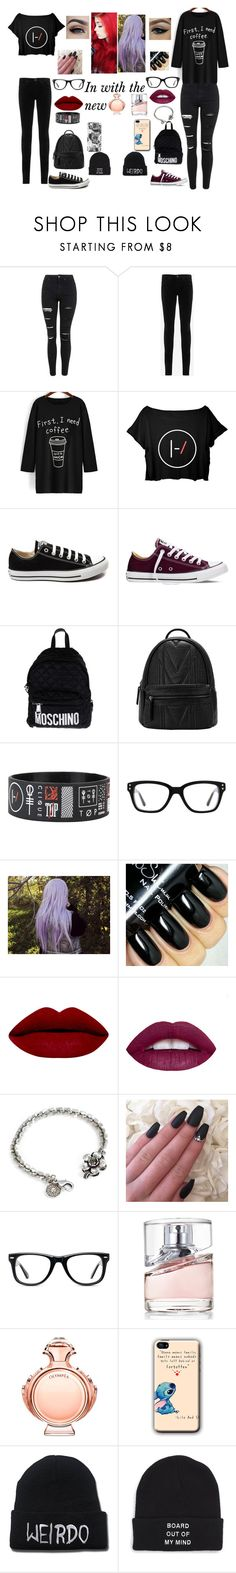 """In with the new"" by sbaez-2 ❤ liked on Polyvore featuring Topshop, AG Adriano Goldschmied, Converse, Moschino, Sweet Romance, Muse, HUGO, Paco Rabanne and Vans"